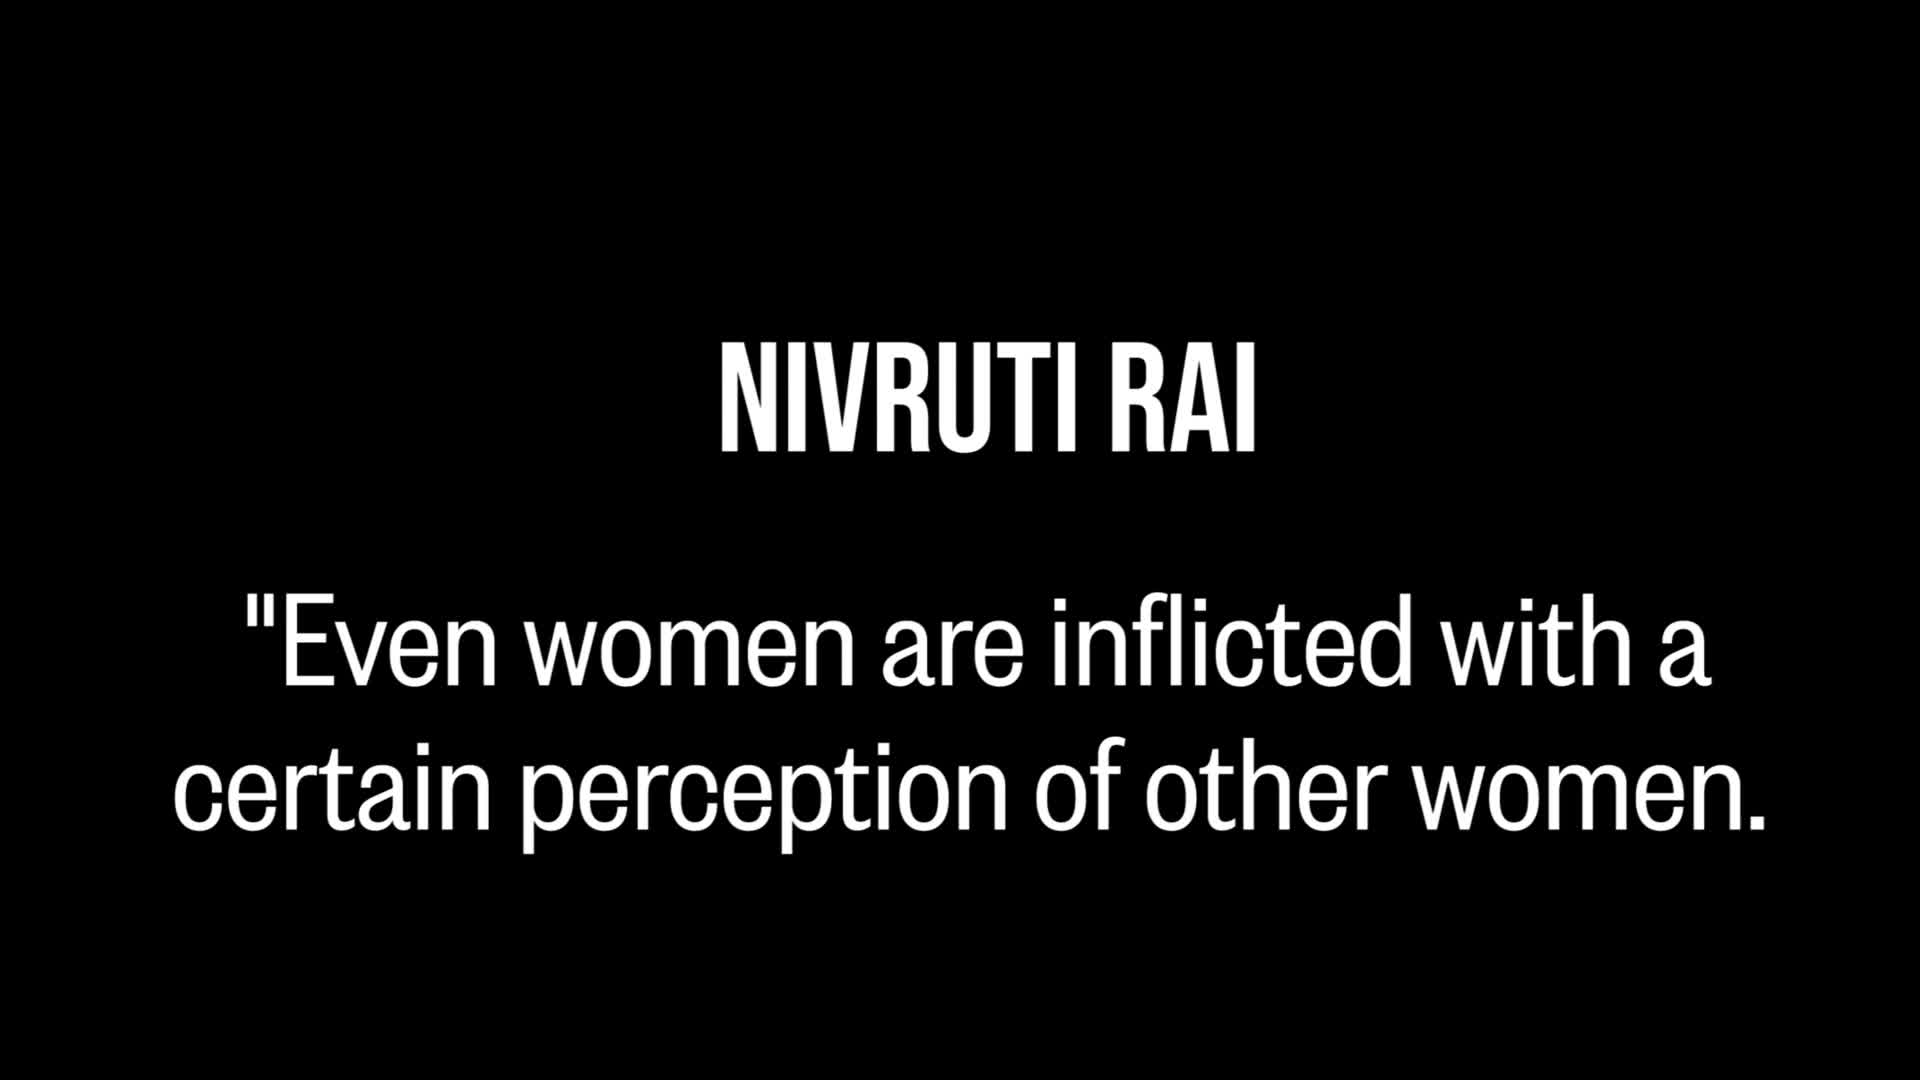 Nivruti Rai Even Women Are Inflicted With A Certain Perception Of Other Women Video